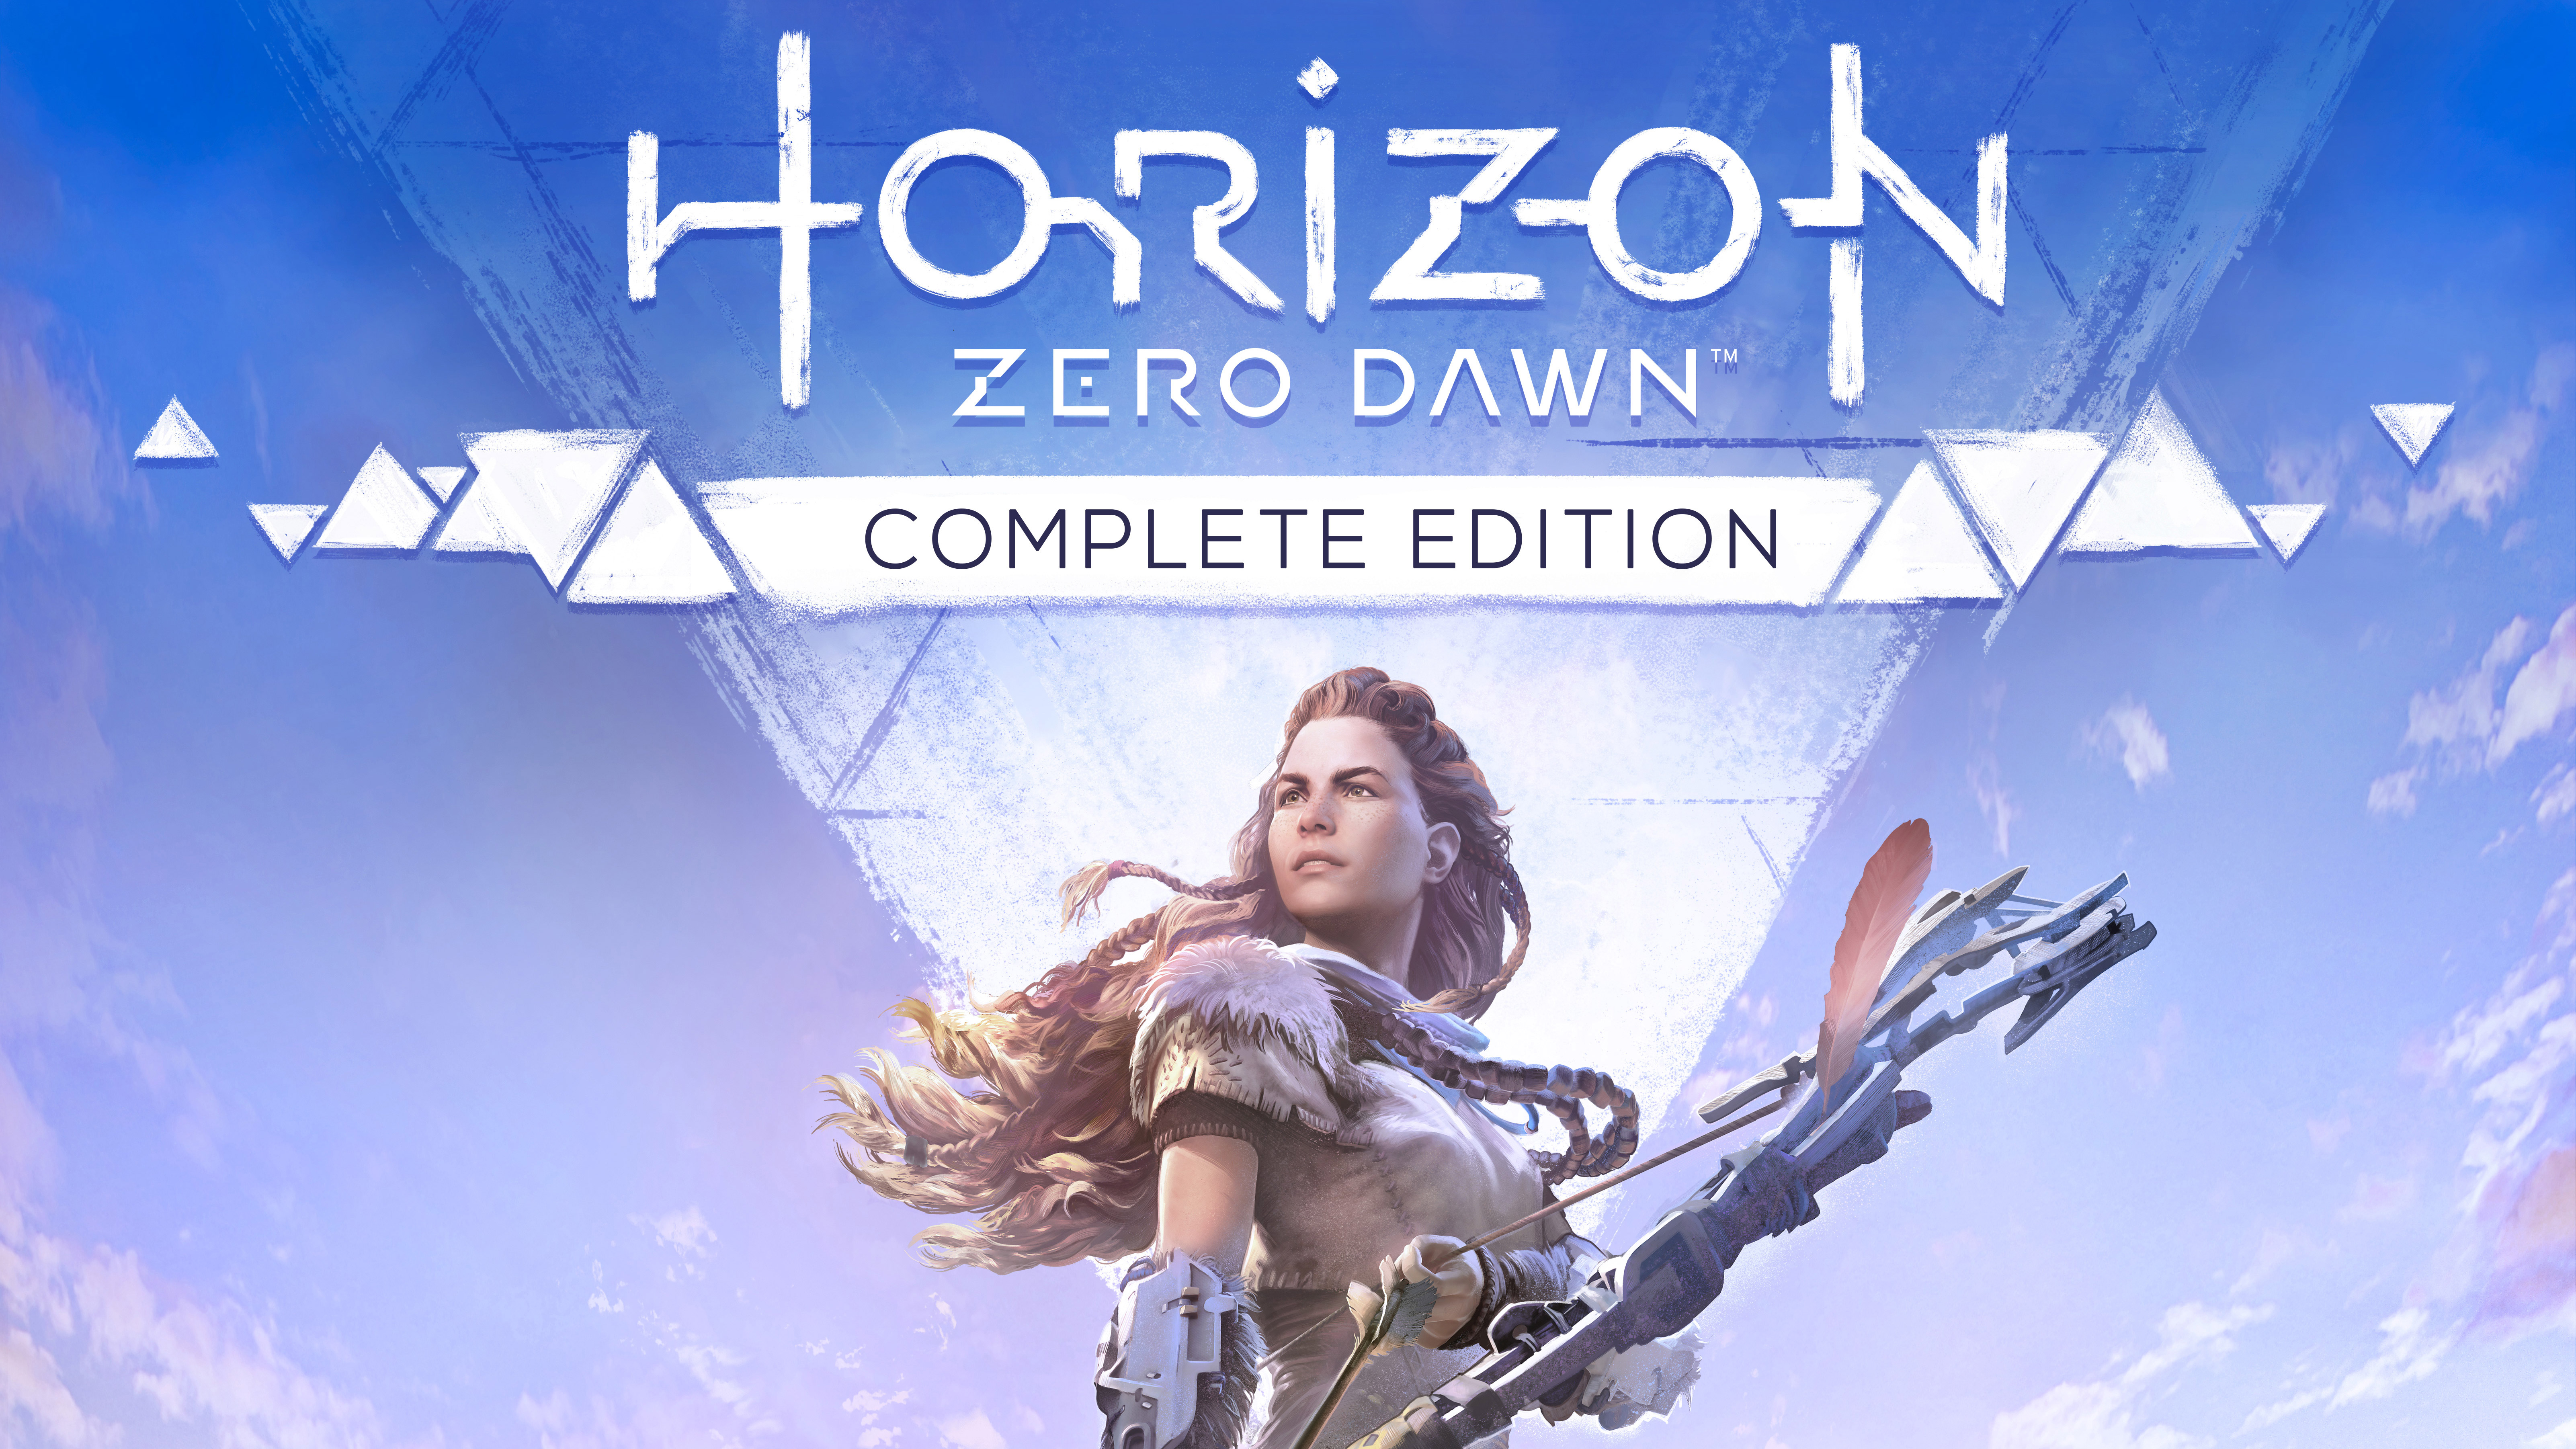 Horizon Zero Dawn Complete Edition Hd Games 4k Wallpapers Images